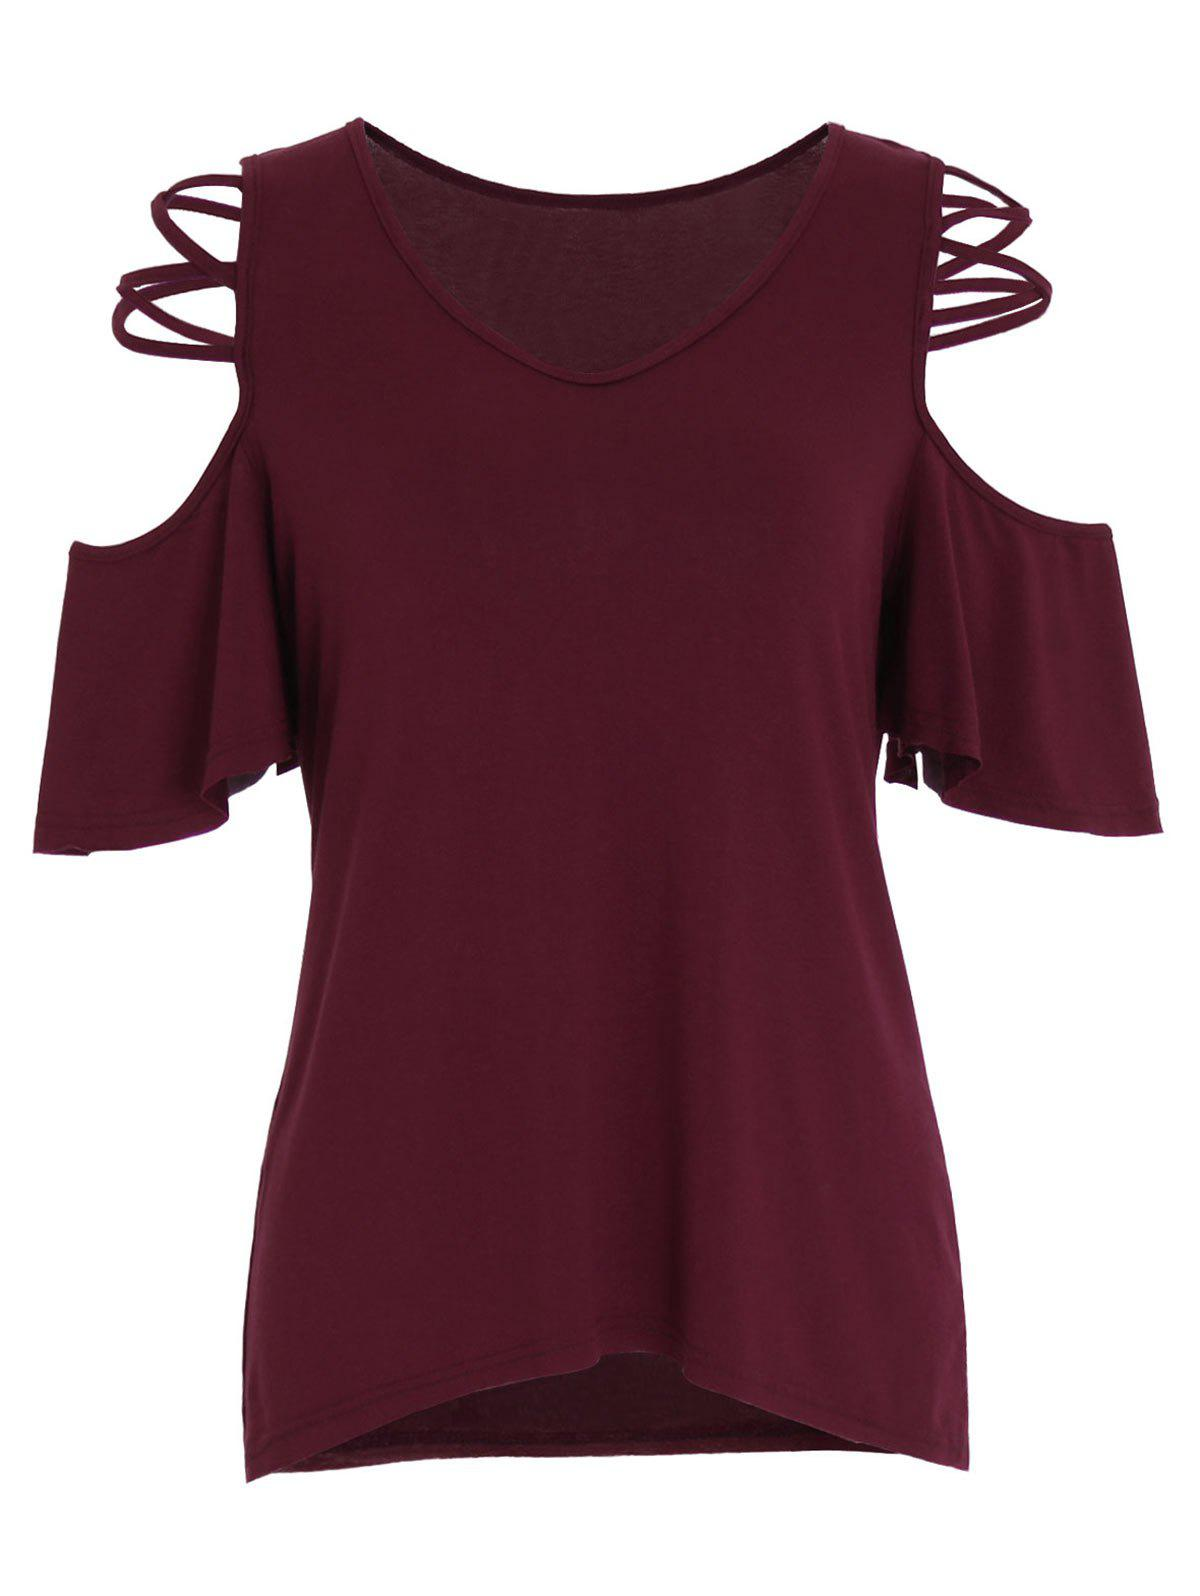 Cold Shoulder Criss Cross T-Shirt ribbed criss cross front cold shoulder t shirt